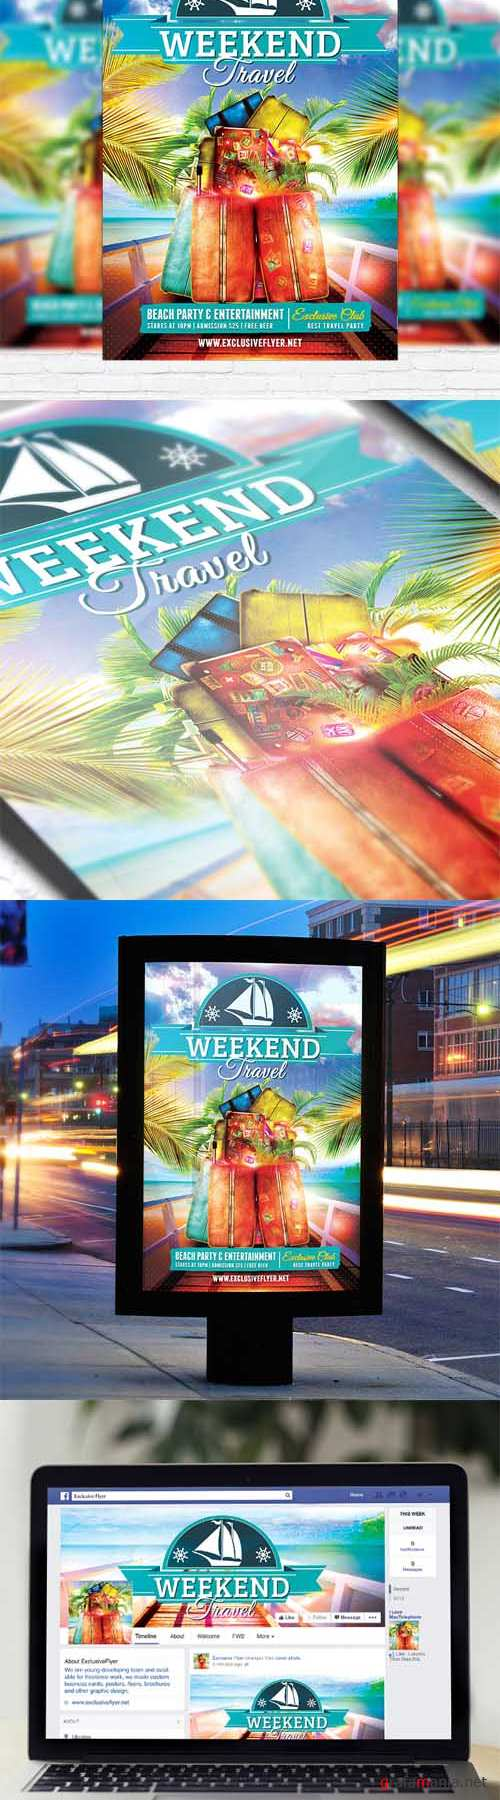 Flyer Template - Travel Weekend + Facebook Cover